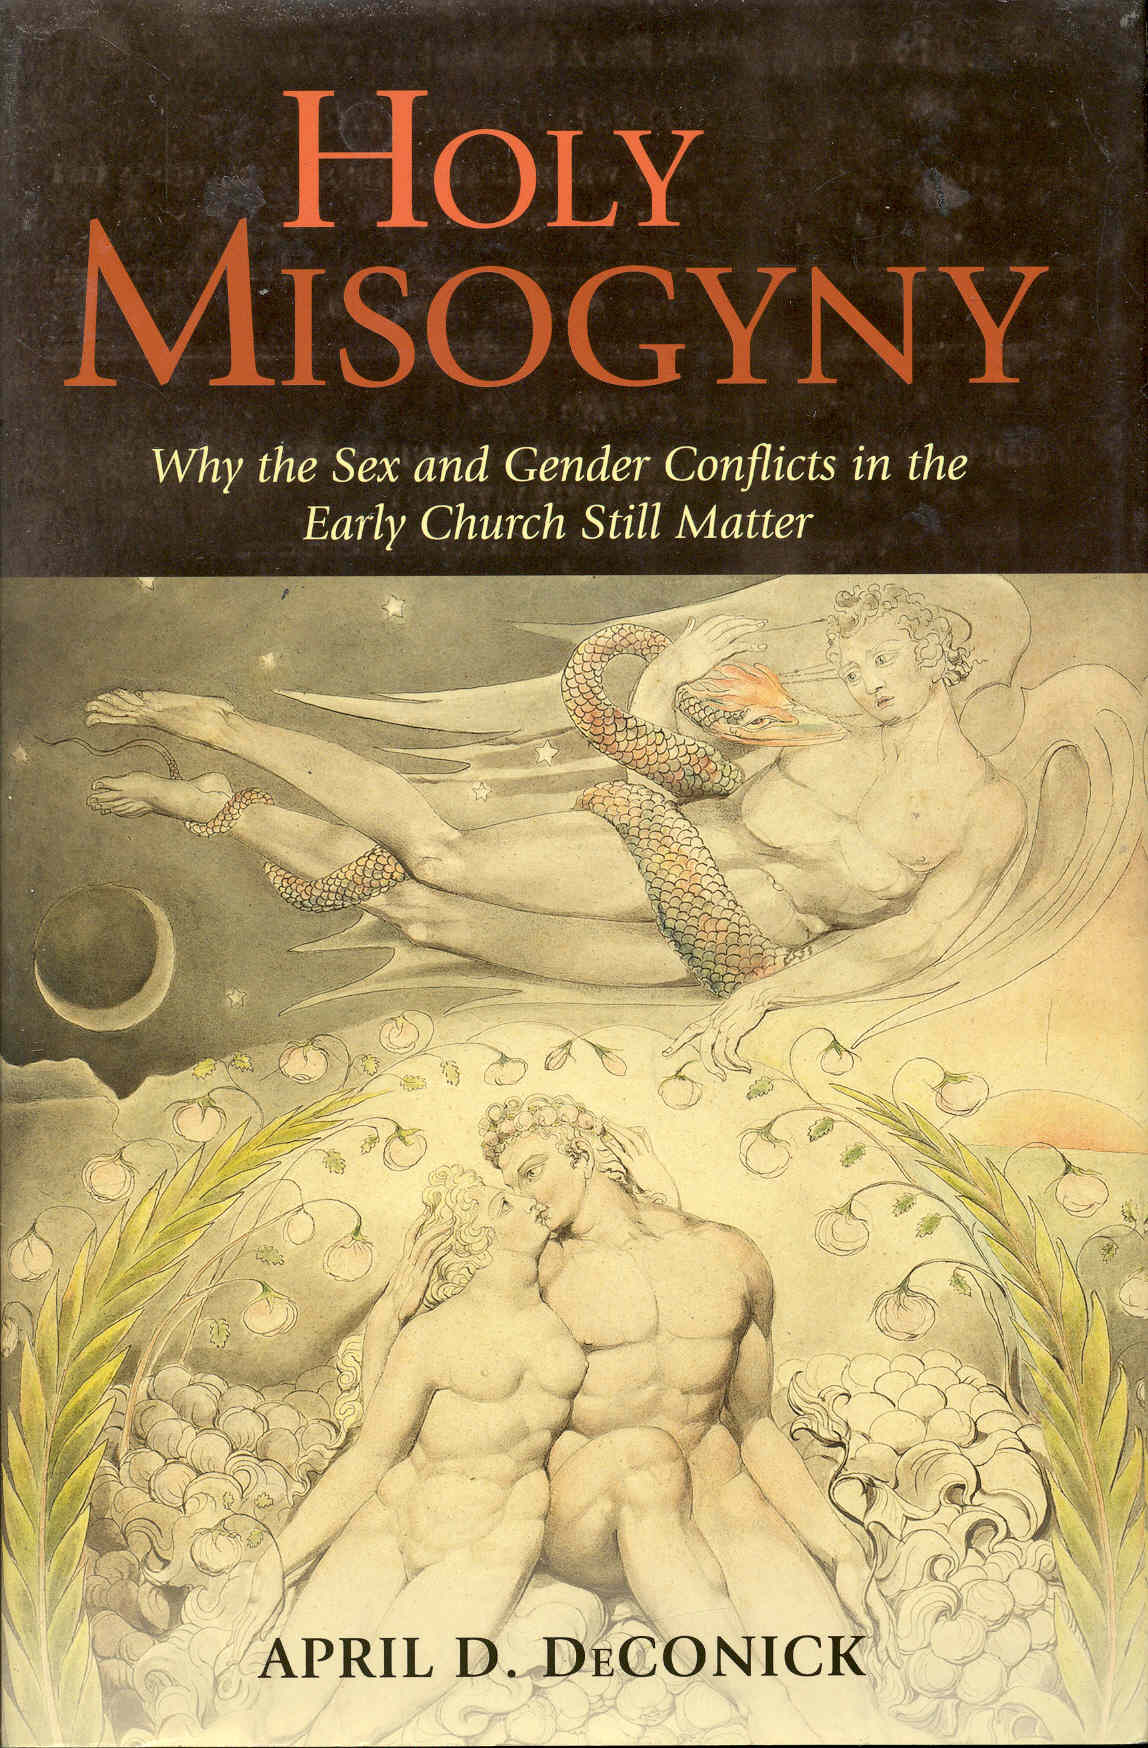 Image for Holy Misogyny: Why the Sex and Gender Conflicts in the Early Church Still Matter